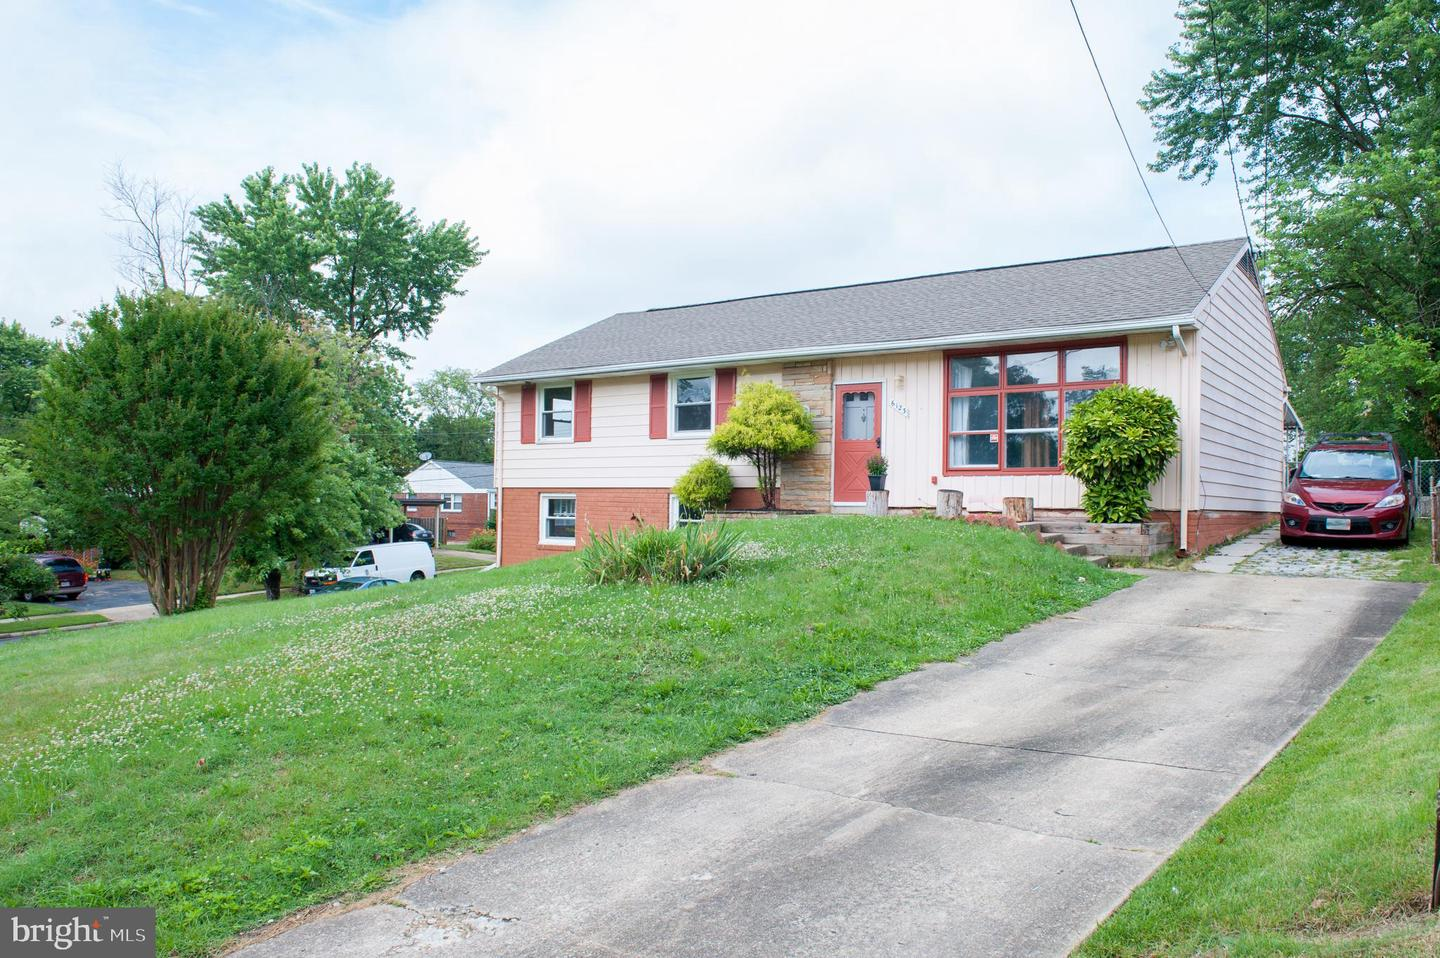 6123 LAMONT DRIVE, NEW CARROLLTON, Maryland